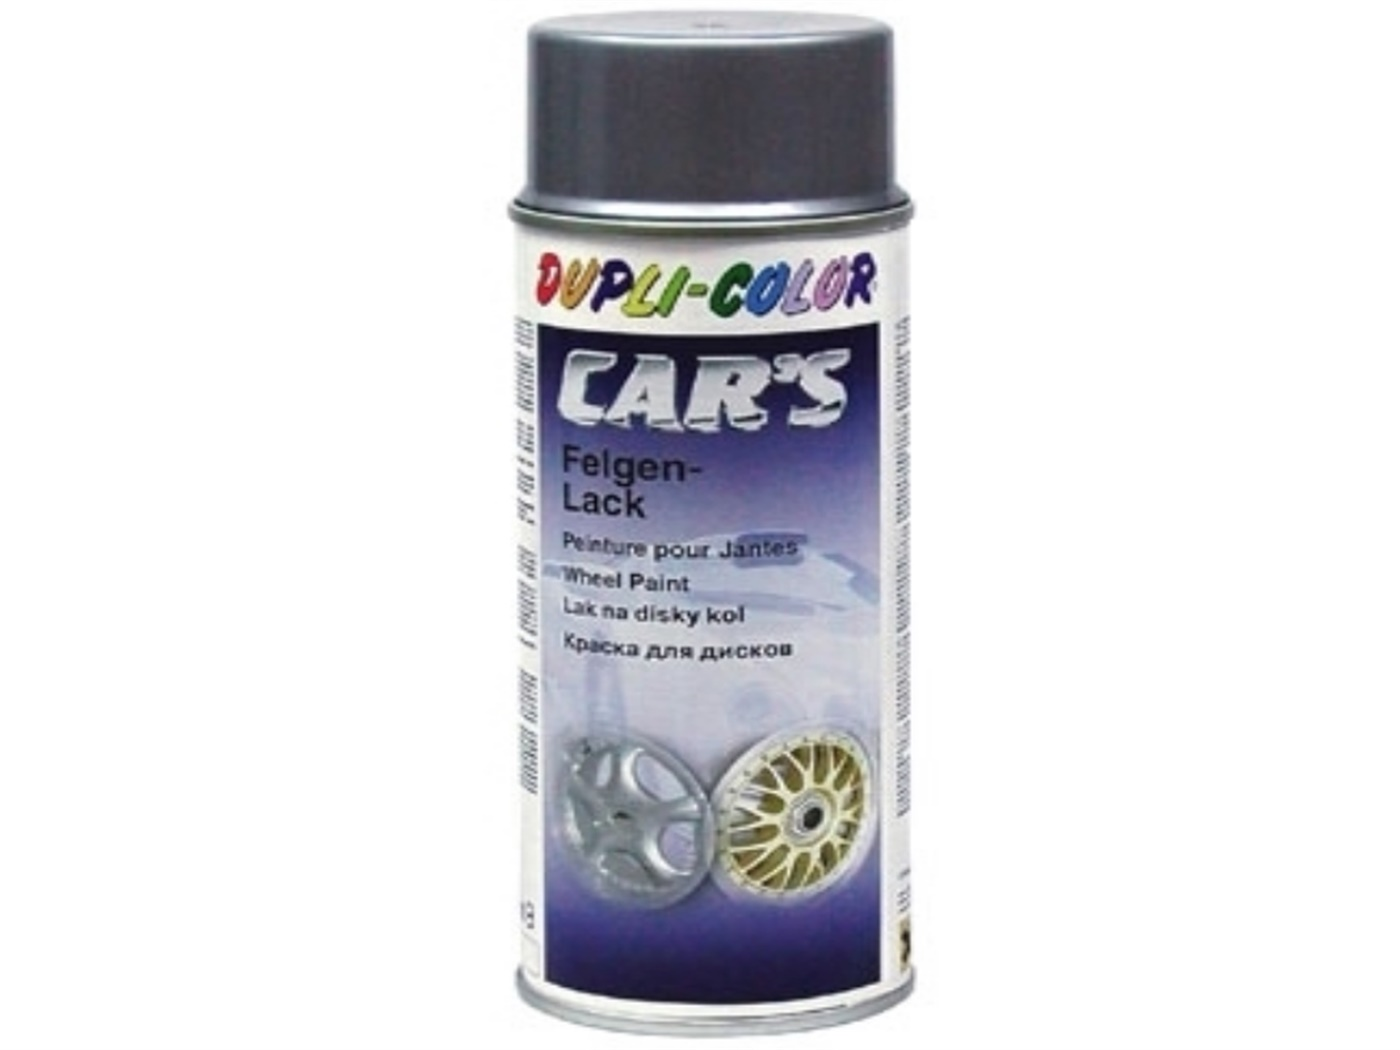 Lak  za  felge  srebrni   4 0 0  ml   motip  cars  spray   3 8 5 9 1 9